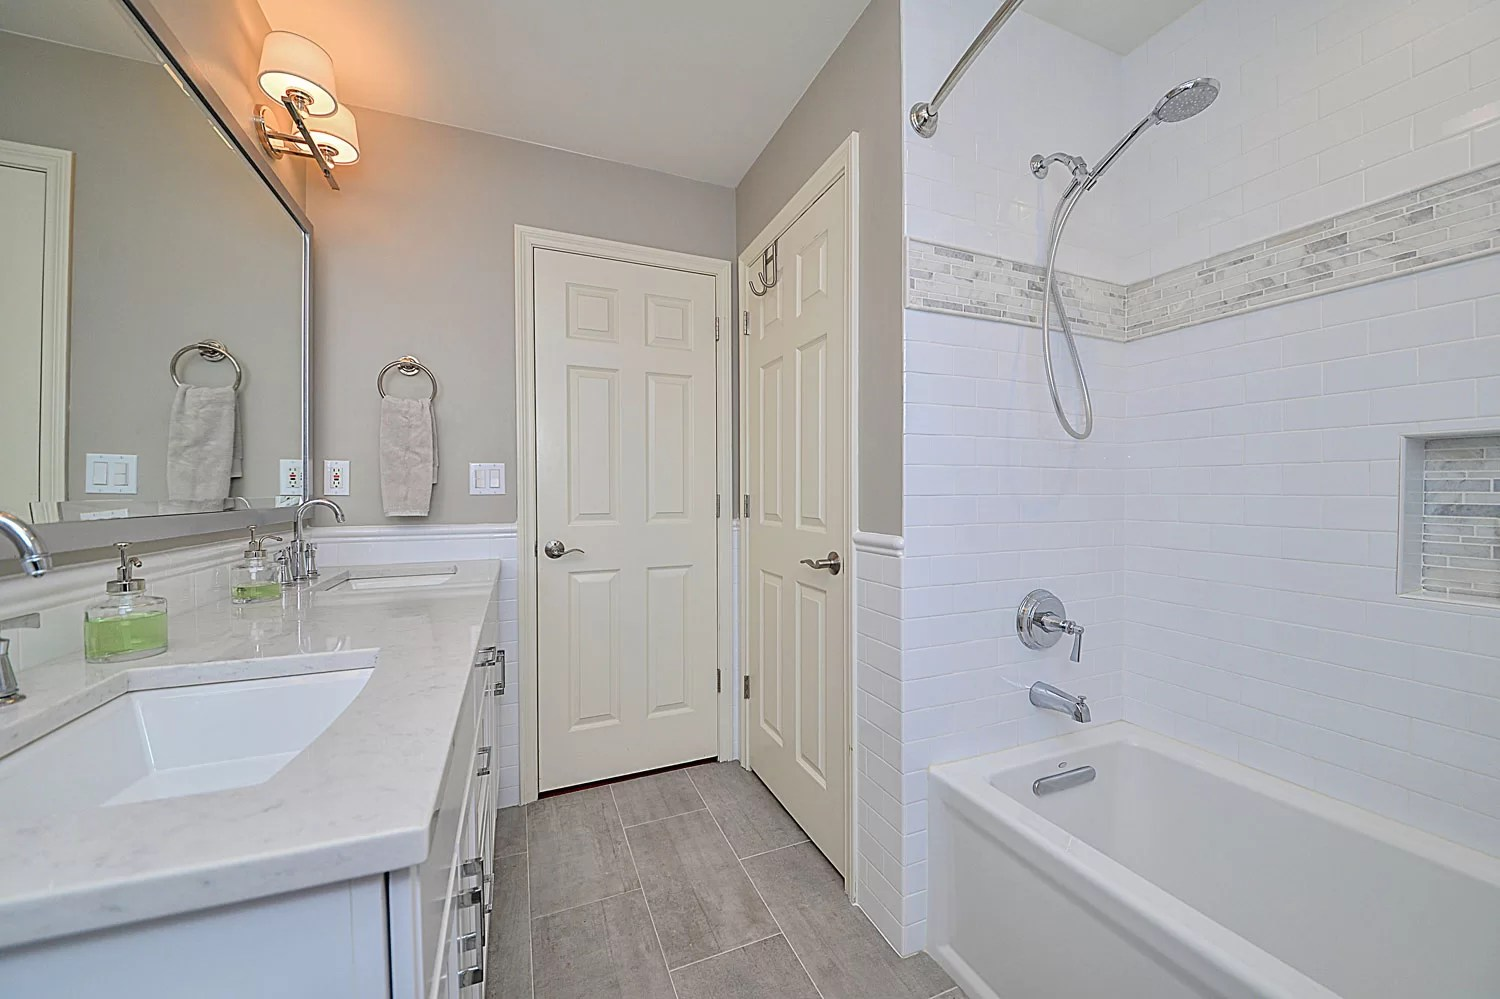 Carl & Susan's Hall Bathroom Remodel Pictures | Home ... on Bathroom Renovation Ideas  id=60984